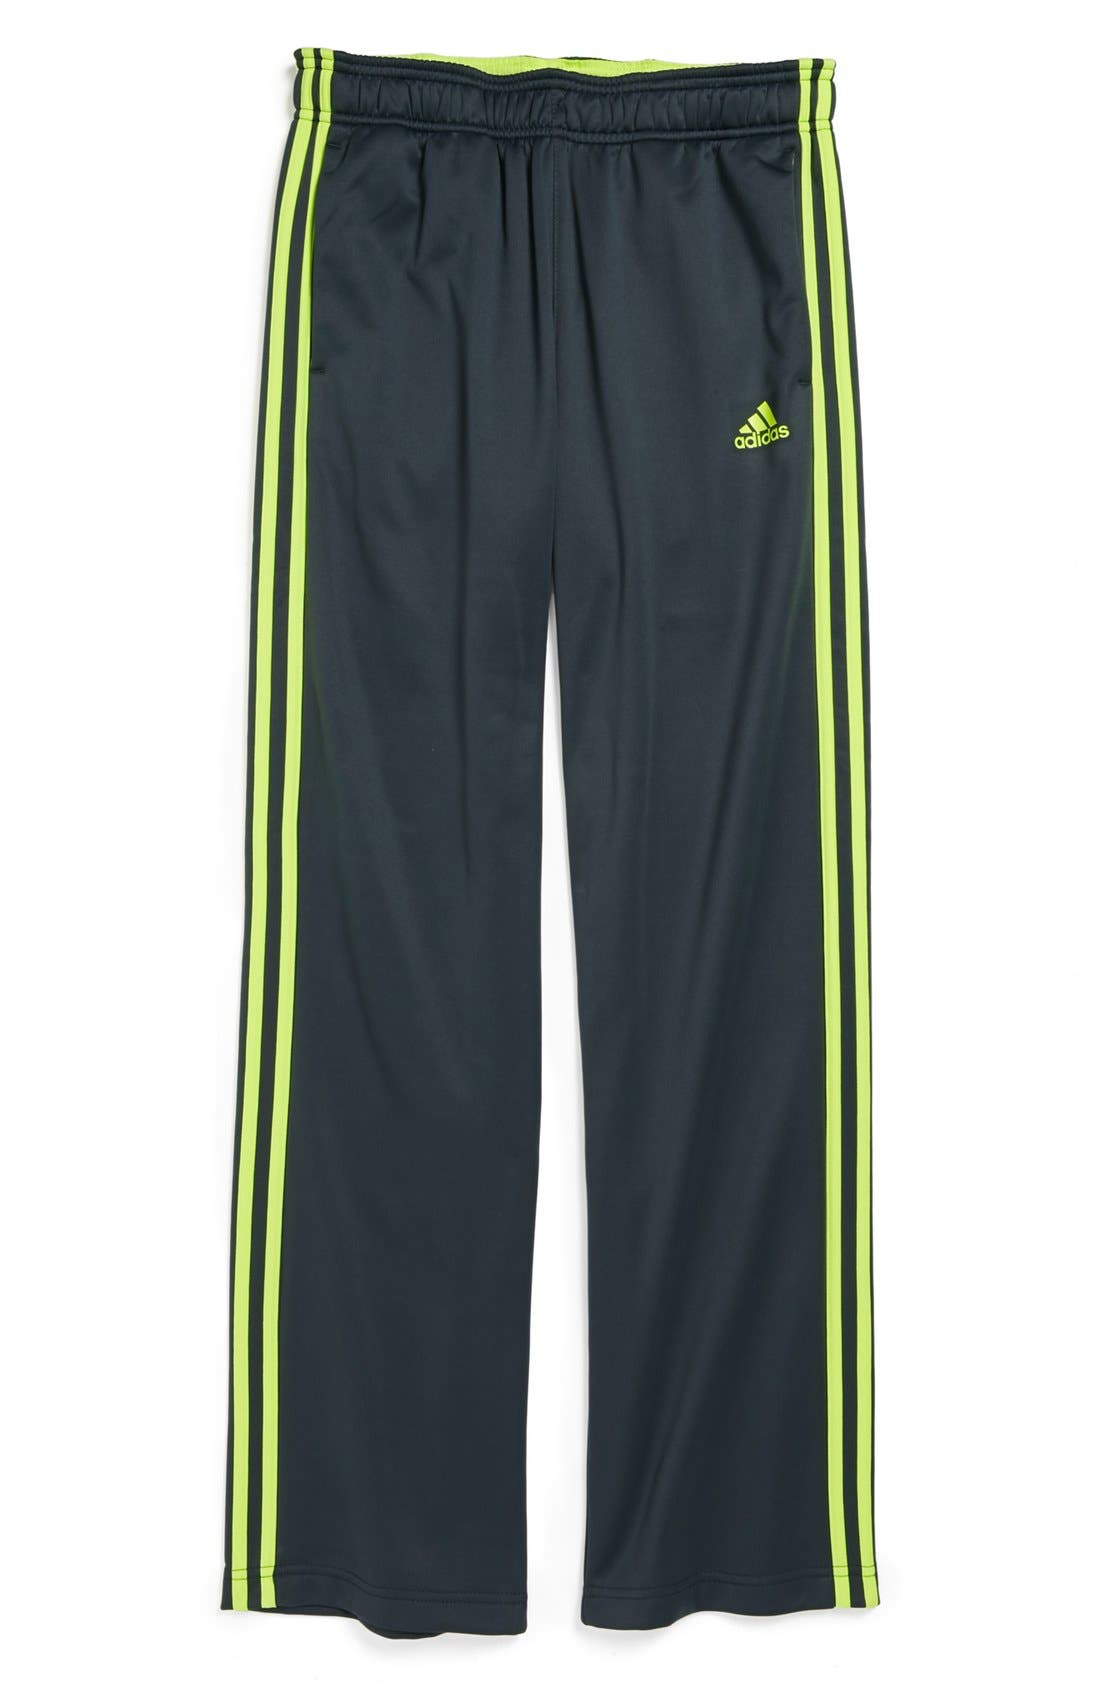 Alternate Image 1 Selected - adidas 'Ultimate' Track Pants (Big Boys)